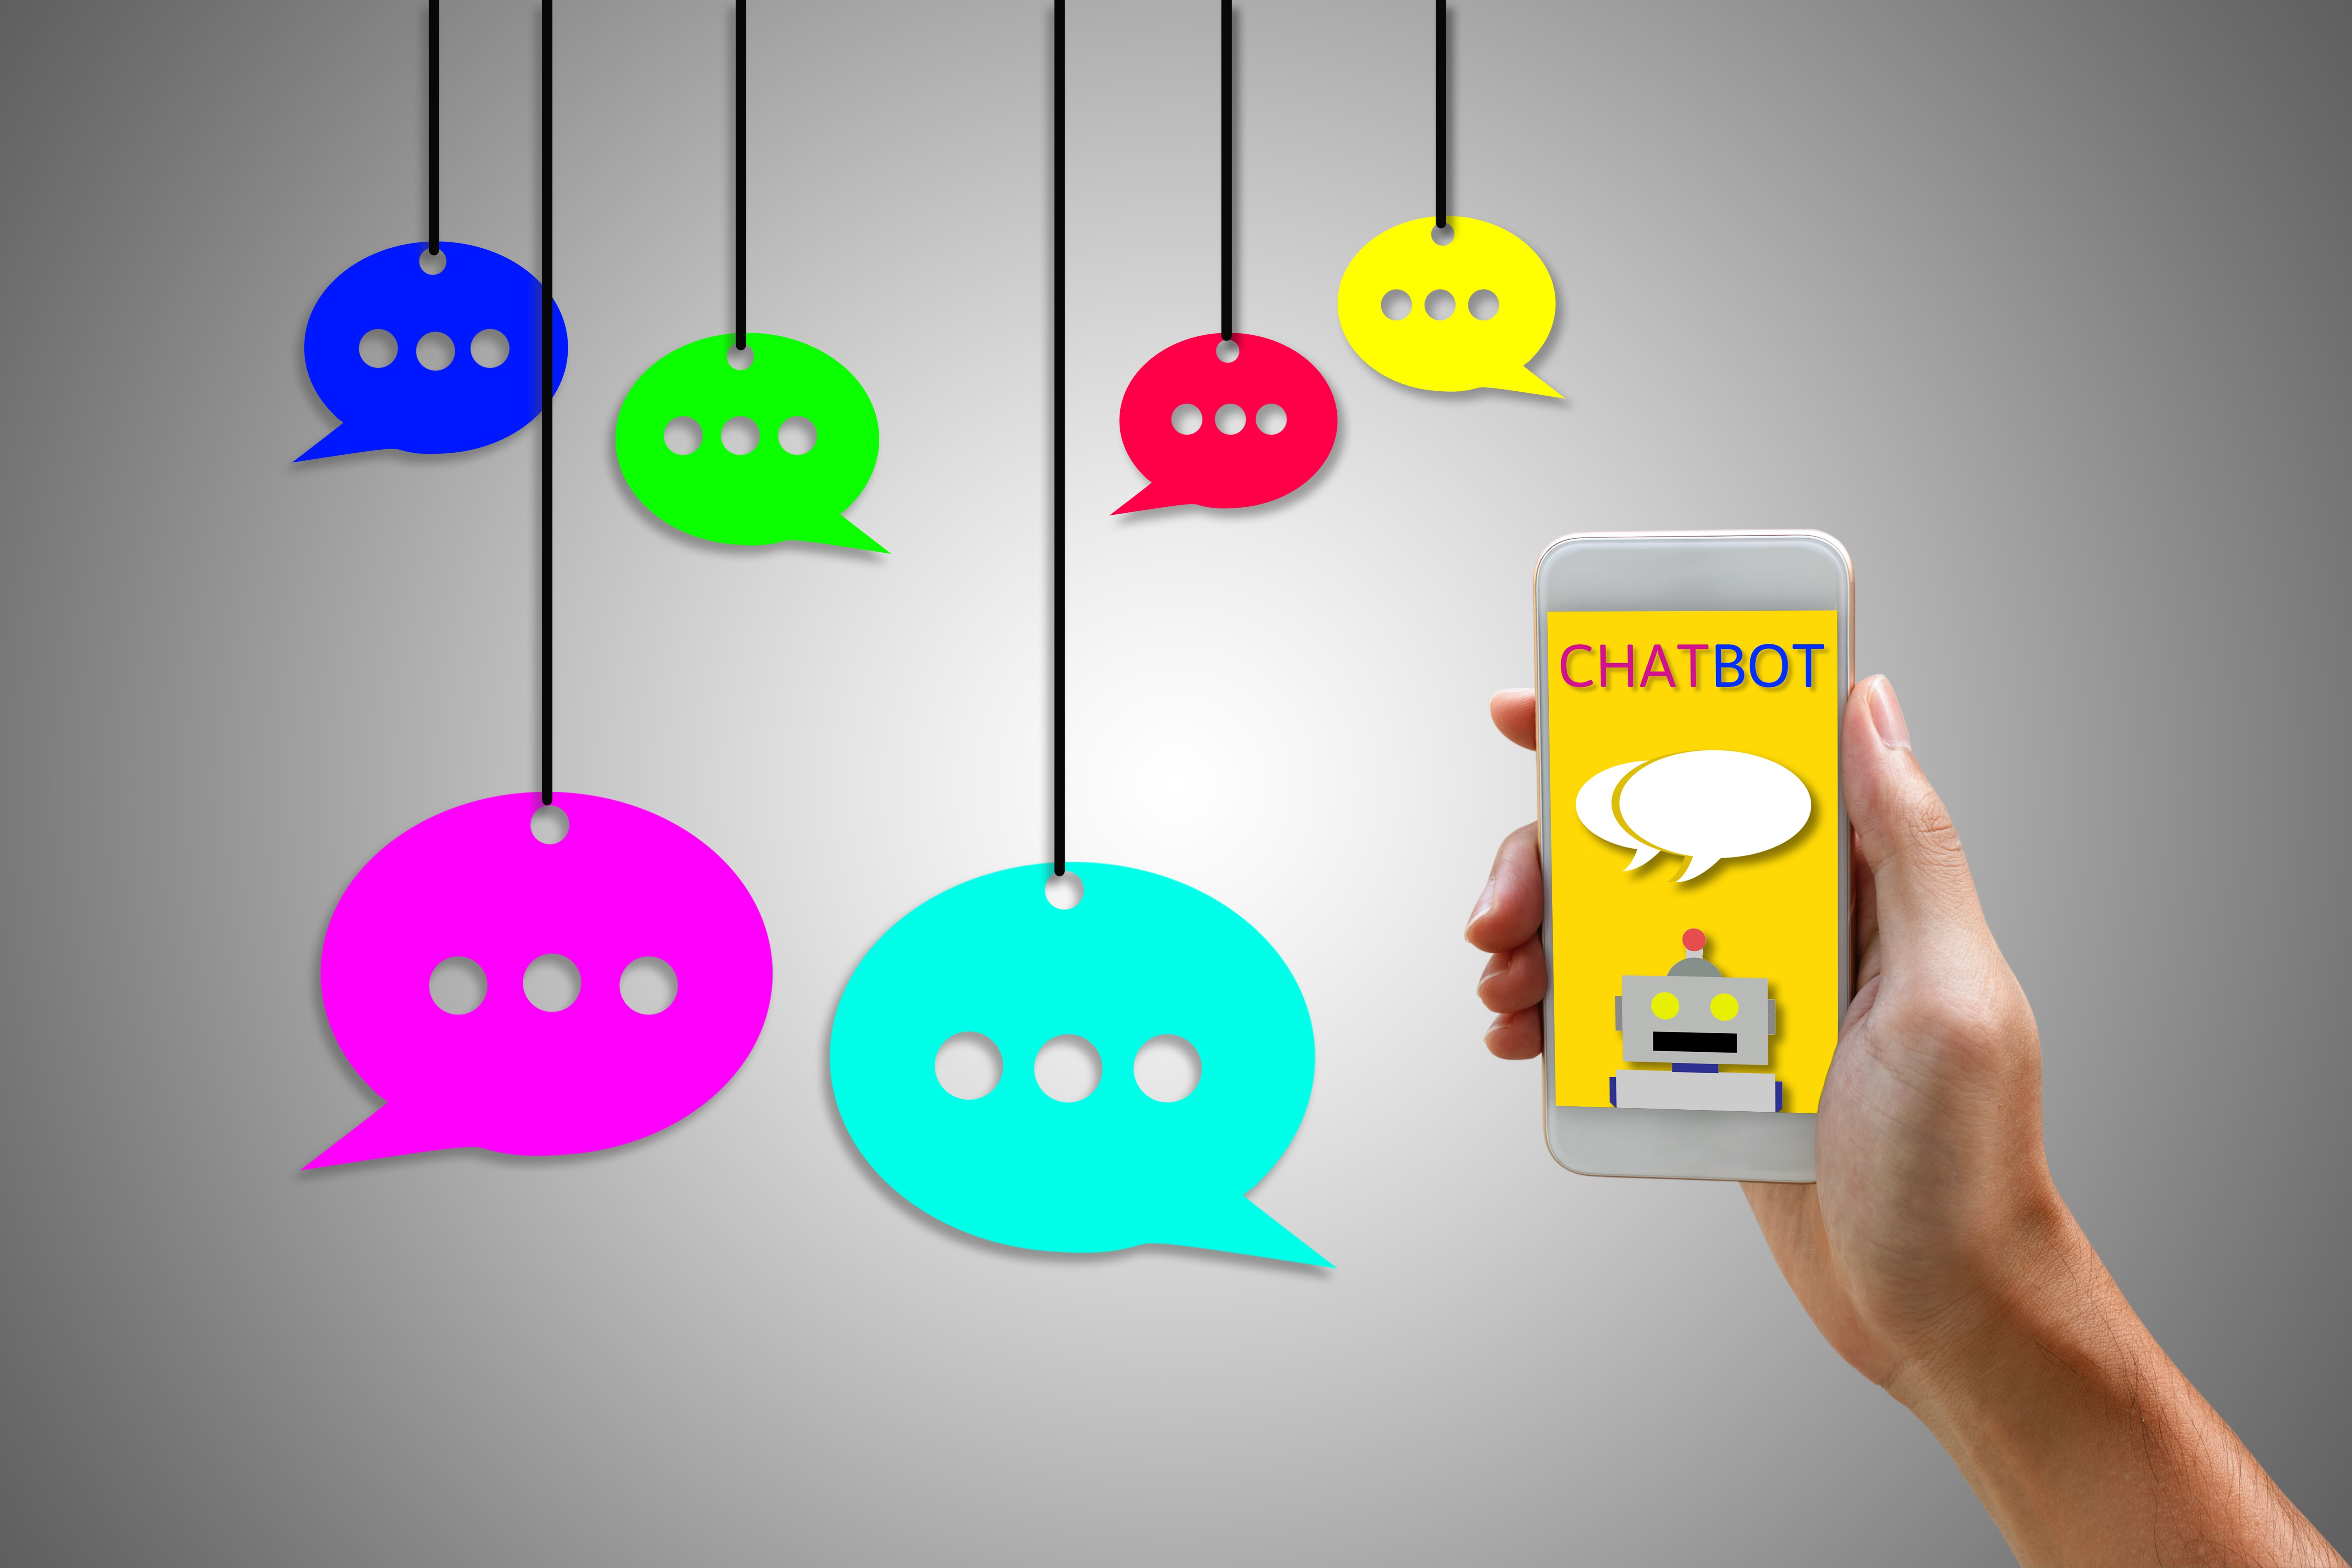 Instant communication with Chatbot